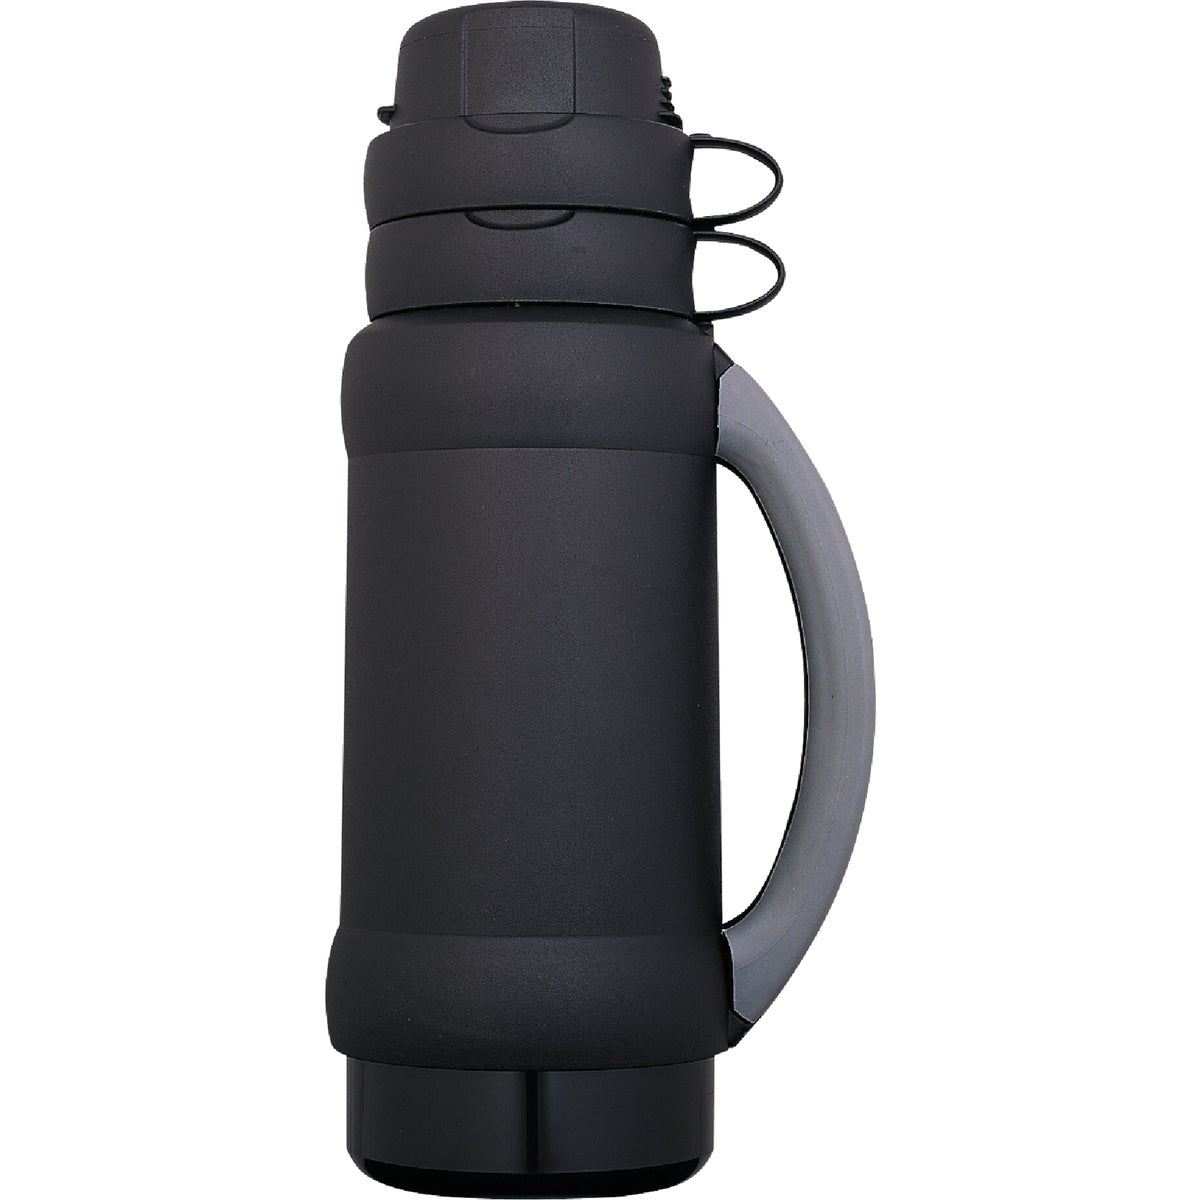 35OZ VACUUM BOTTLE - 3410ATRI4 by Thermos Co